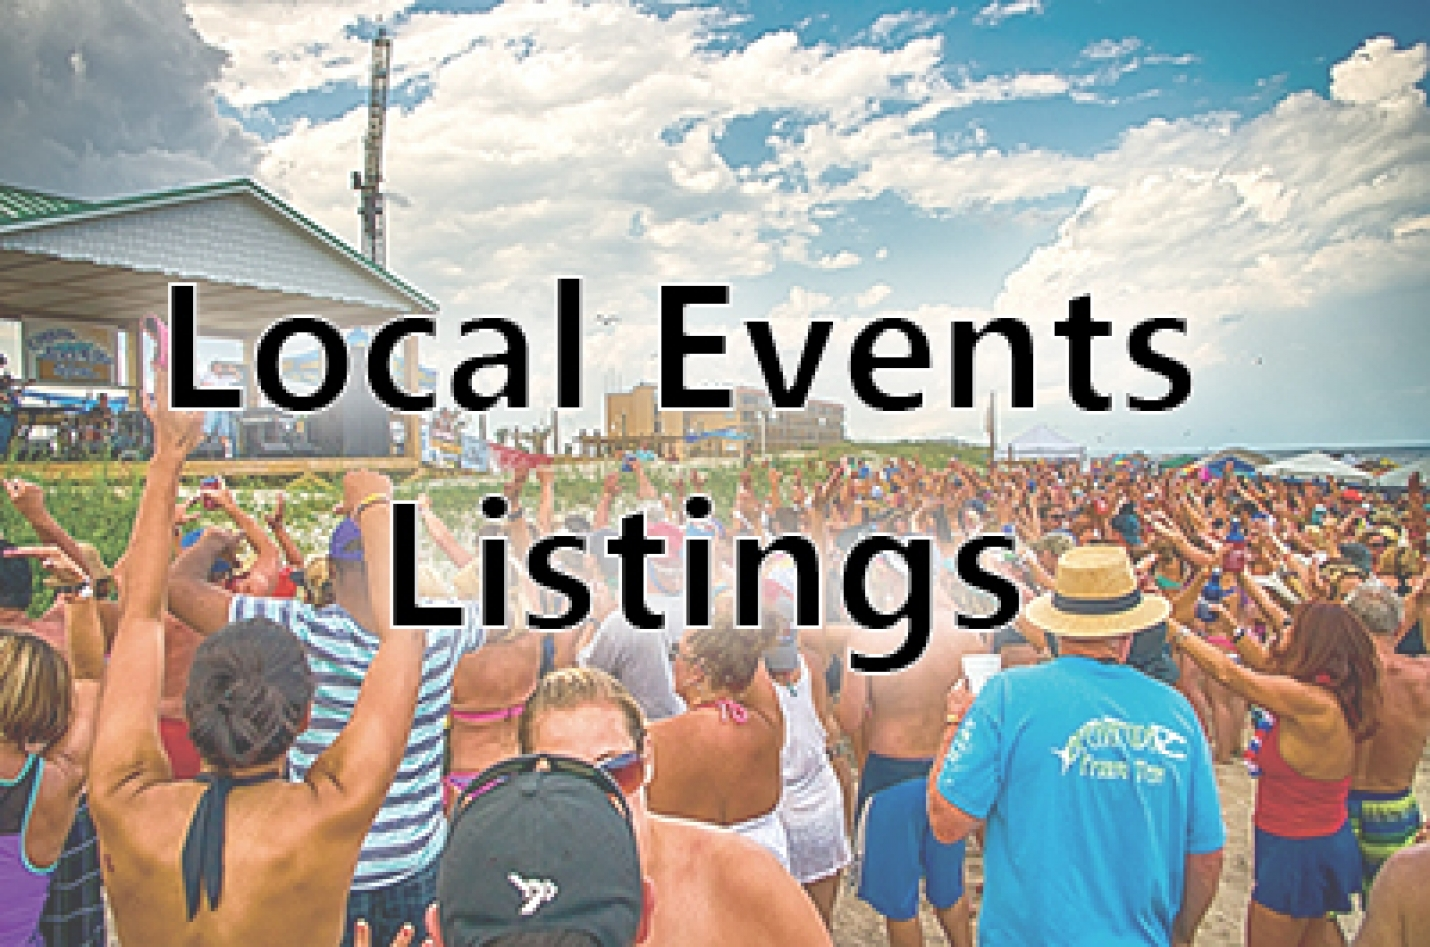 Local Events Listings for January 24th, 2018